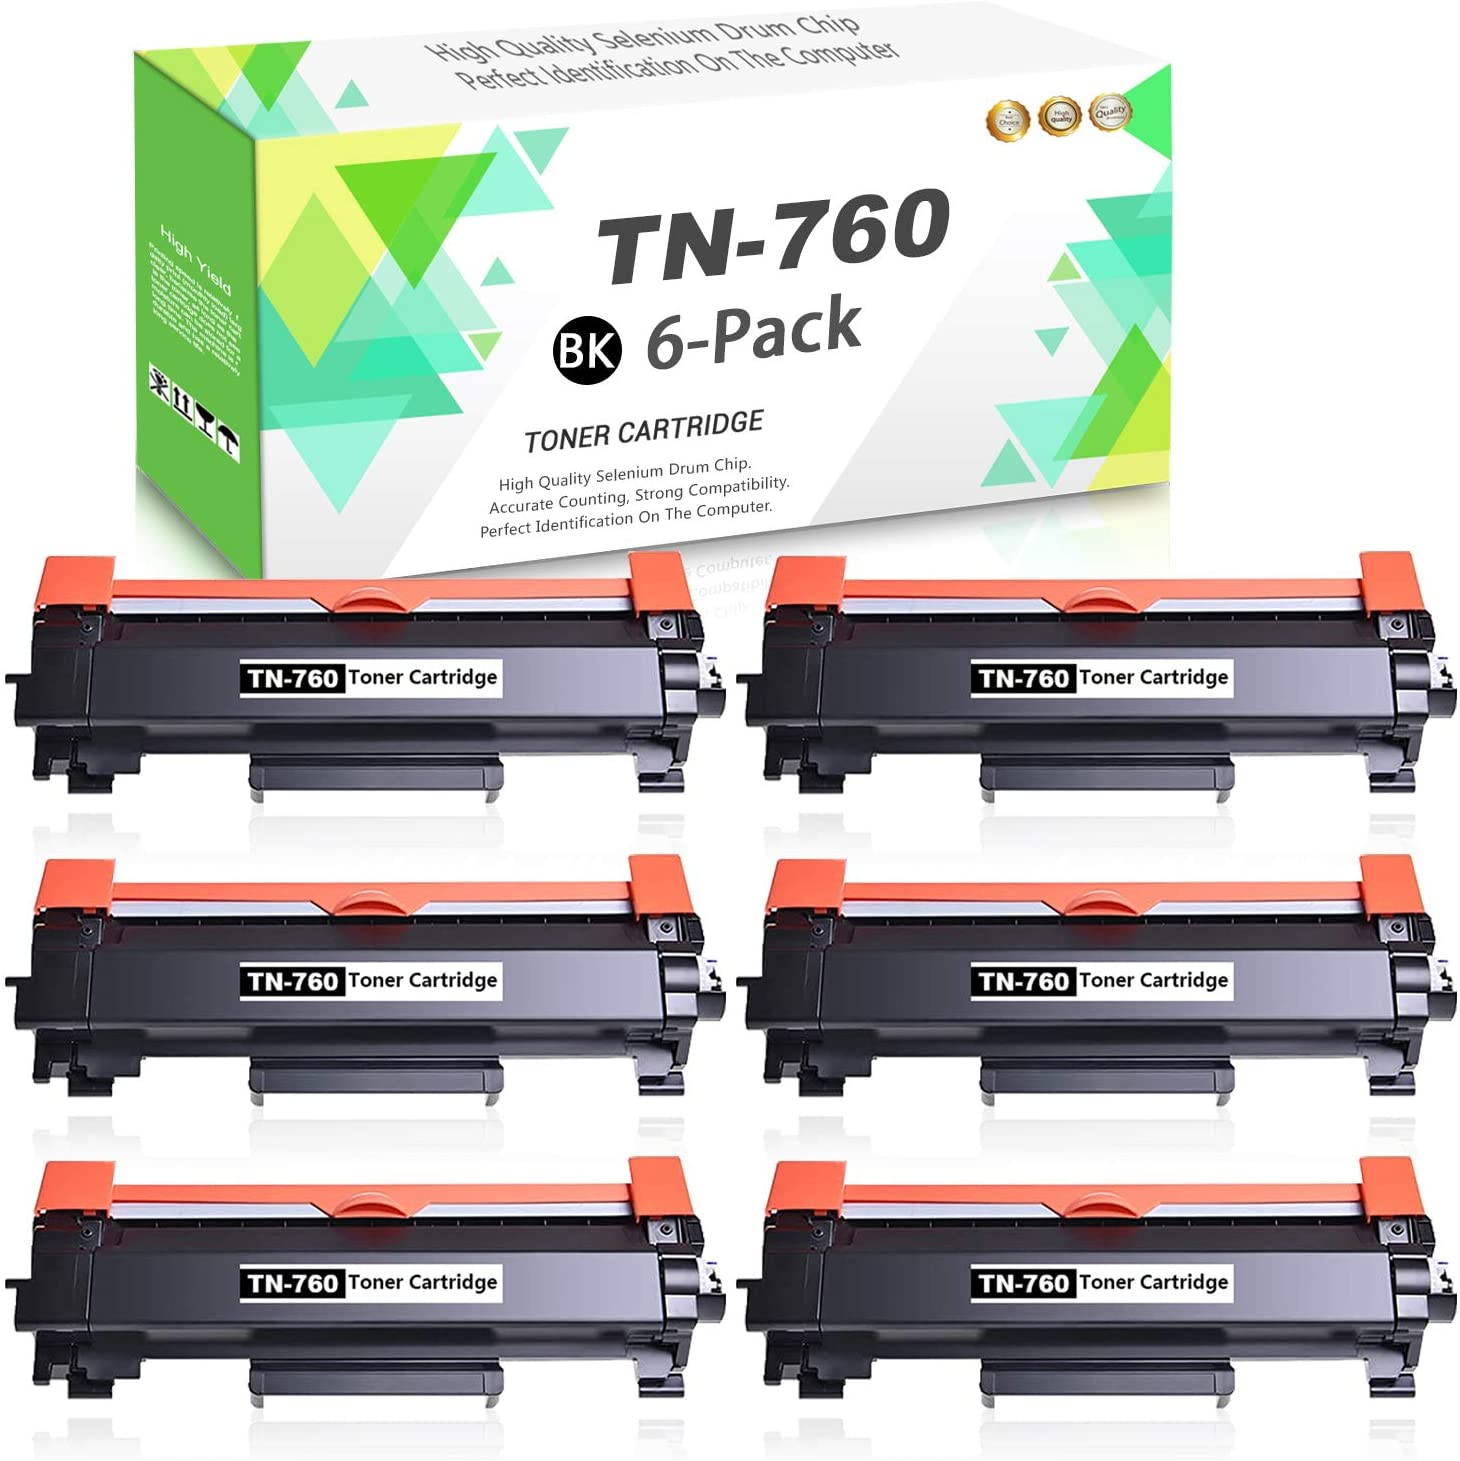 Compatible TN-760 Toner Cartridge High Yield (Black,6-Pack) Replacement for Brother MFC-L2750DWXL MFC-L2750DW MFC-L2710DW DCP-L2550DW HL-L2370DW/DWXL HL-L2395DW Series Printer,Sold by TmallToner.